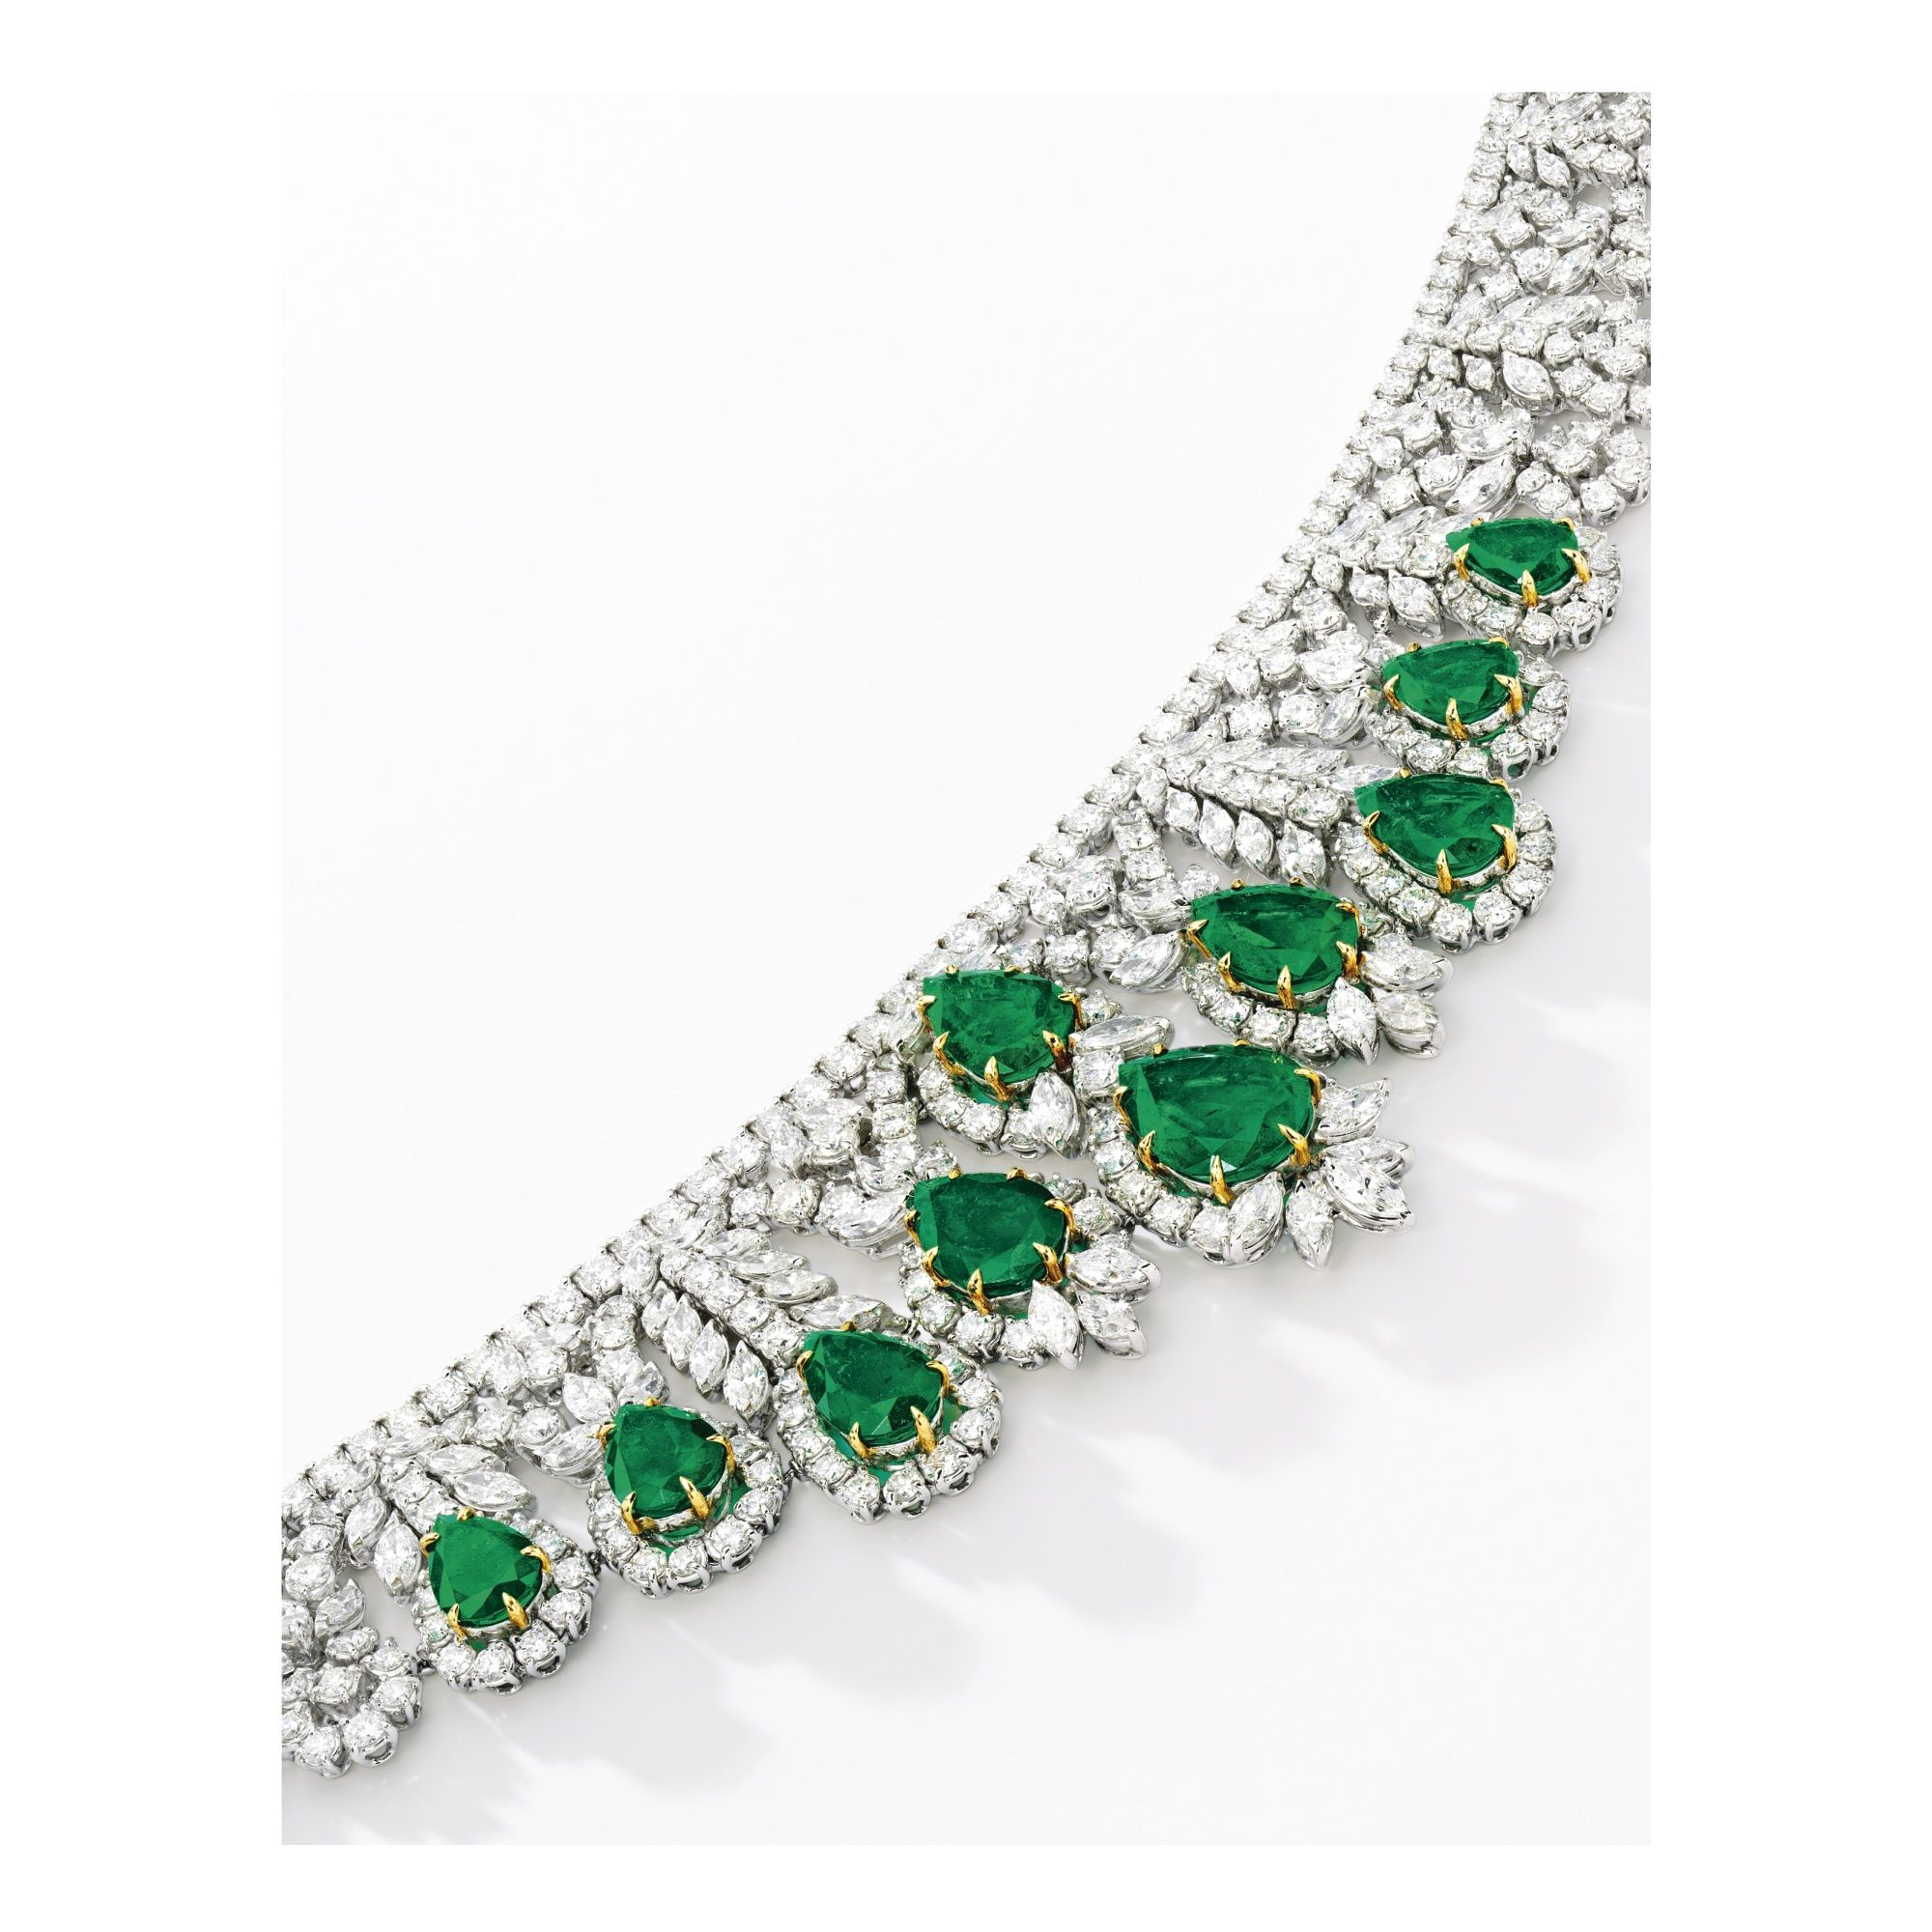 The necklace set with ten pear-shaped emeralds, to diamond-set links of graduated floral motif, suspending from a line of brilliant-cut diamonds; and pair of pendent earrings en suite; the emeralds and diamonds altogether weighing approximately 47.92 and 55.00 carats